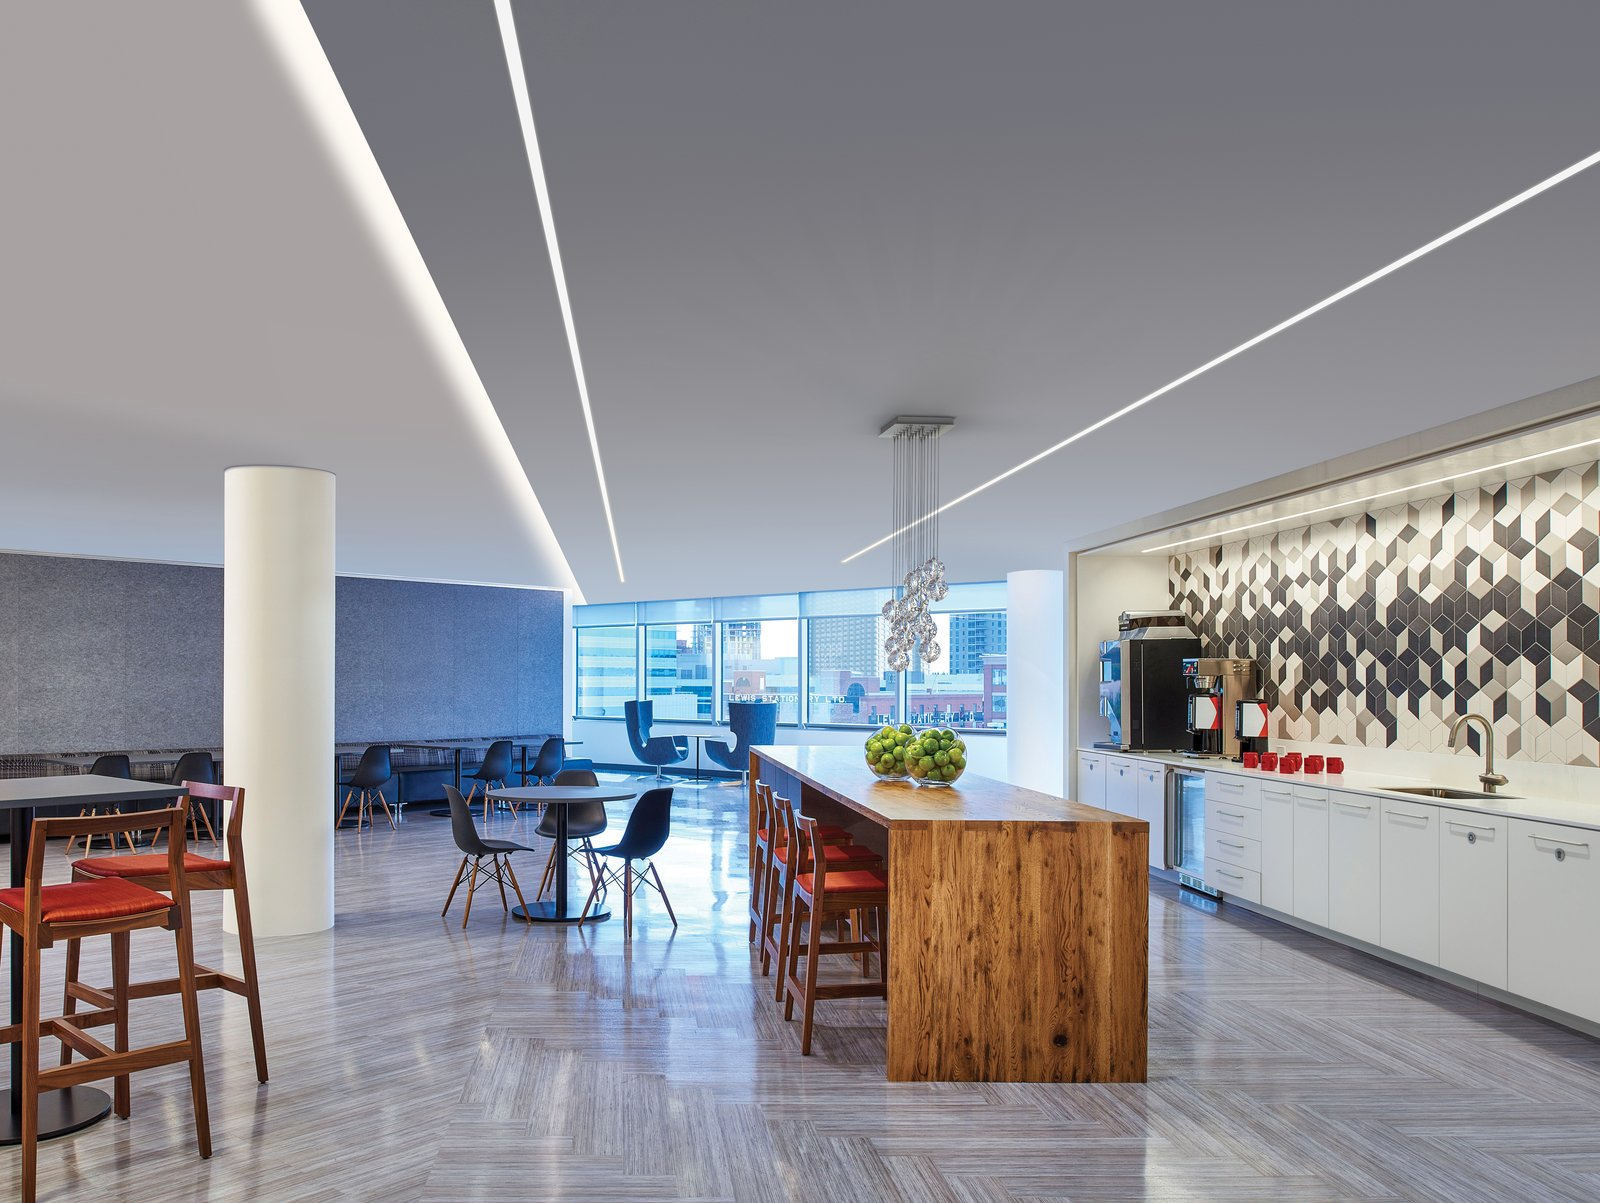 TruLine 1.6A lighting blends seamlessly into the architecture, to enhance this dramatic dining space   Kitchen & Dining